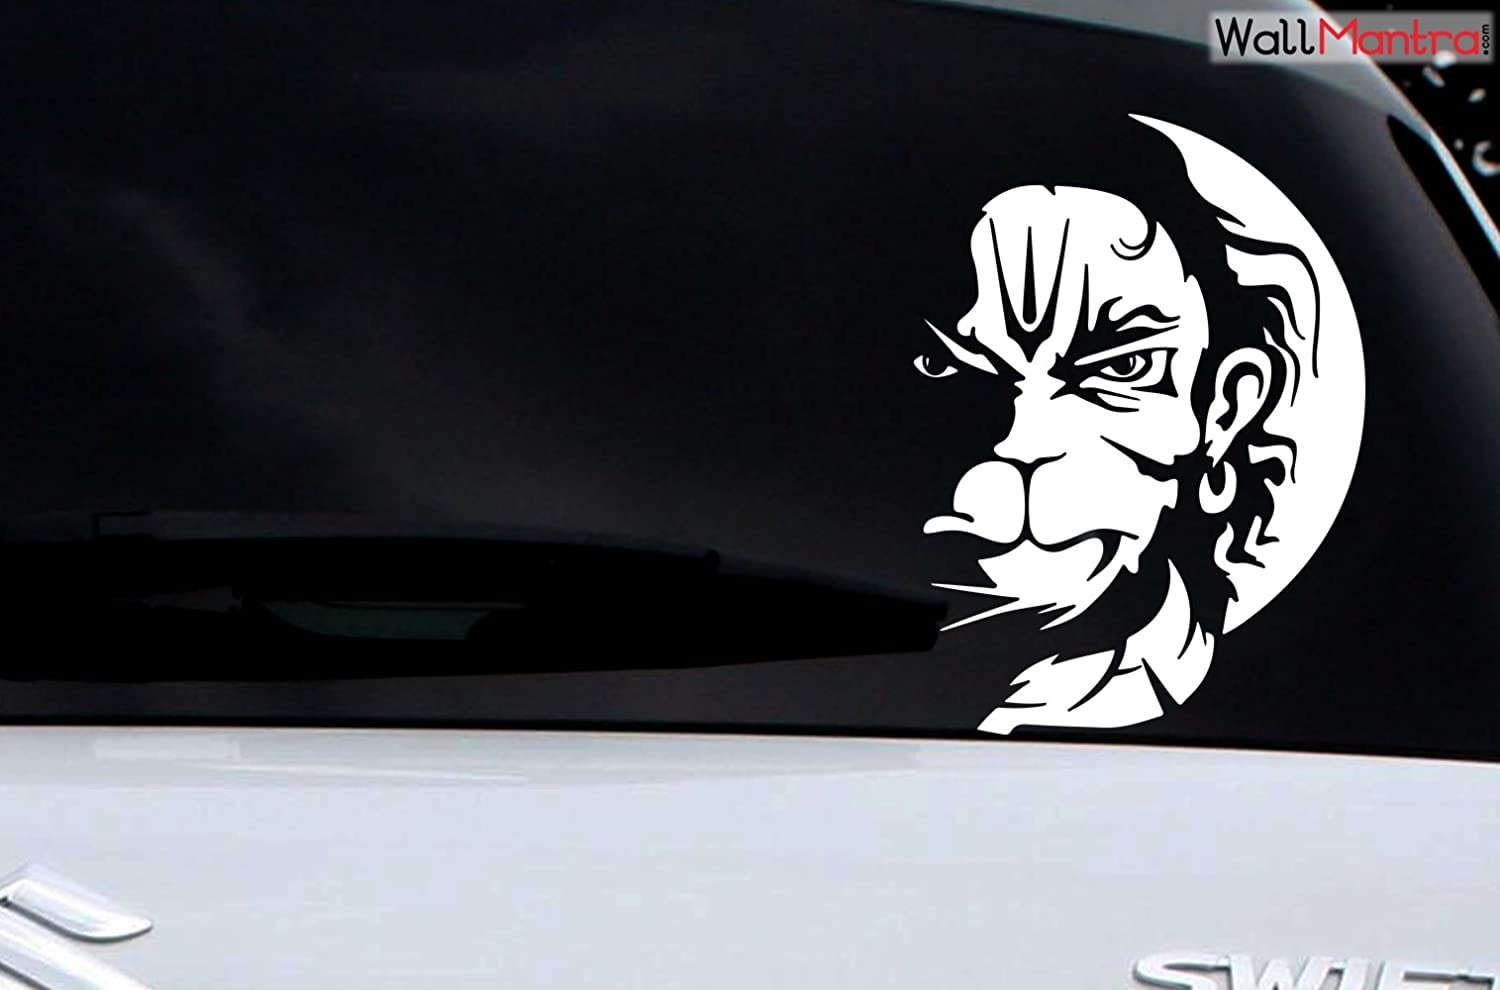 Wallmantra angry hanuman orange car sticker white self adhesive peel and stick diy vinyl car graphics fits all cars 53 cm w x 41 cm h amazon in car